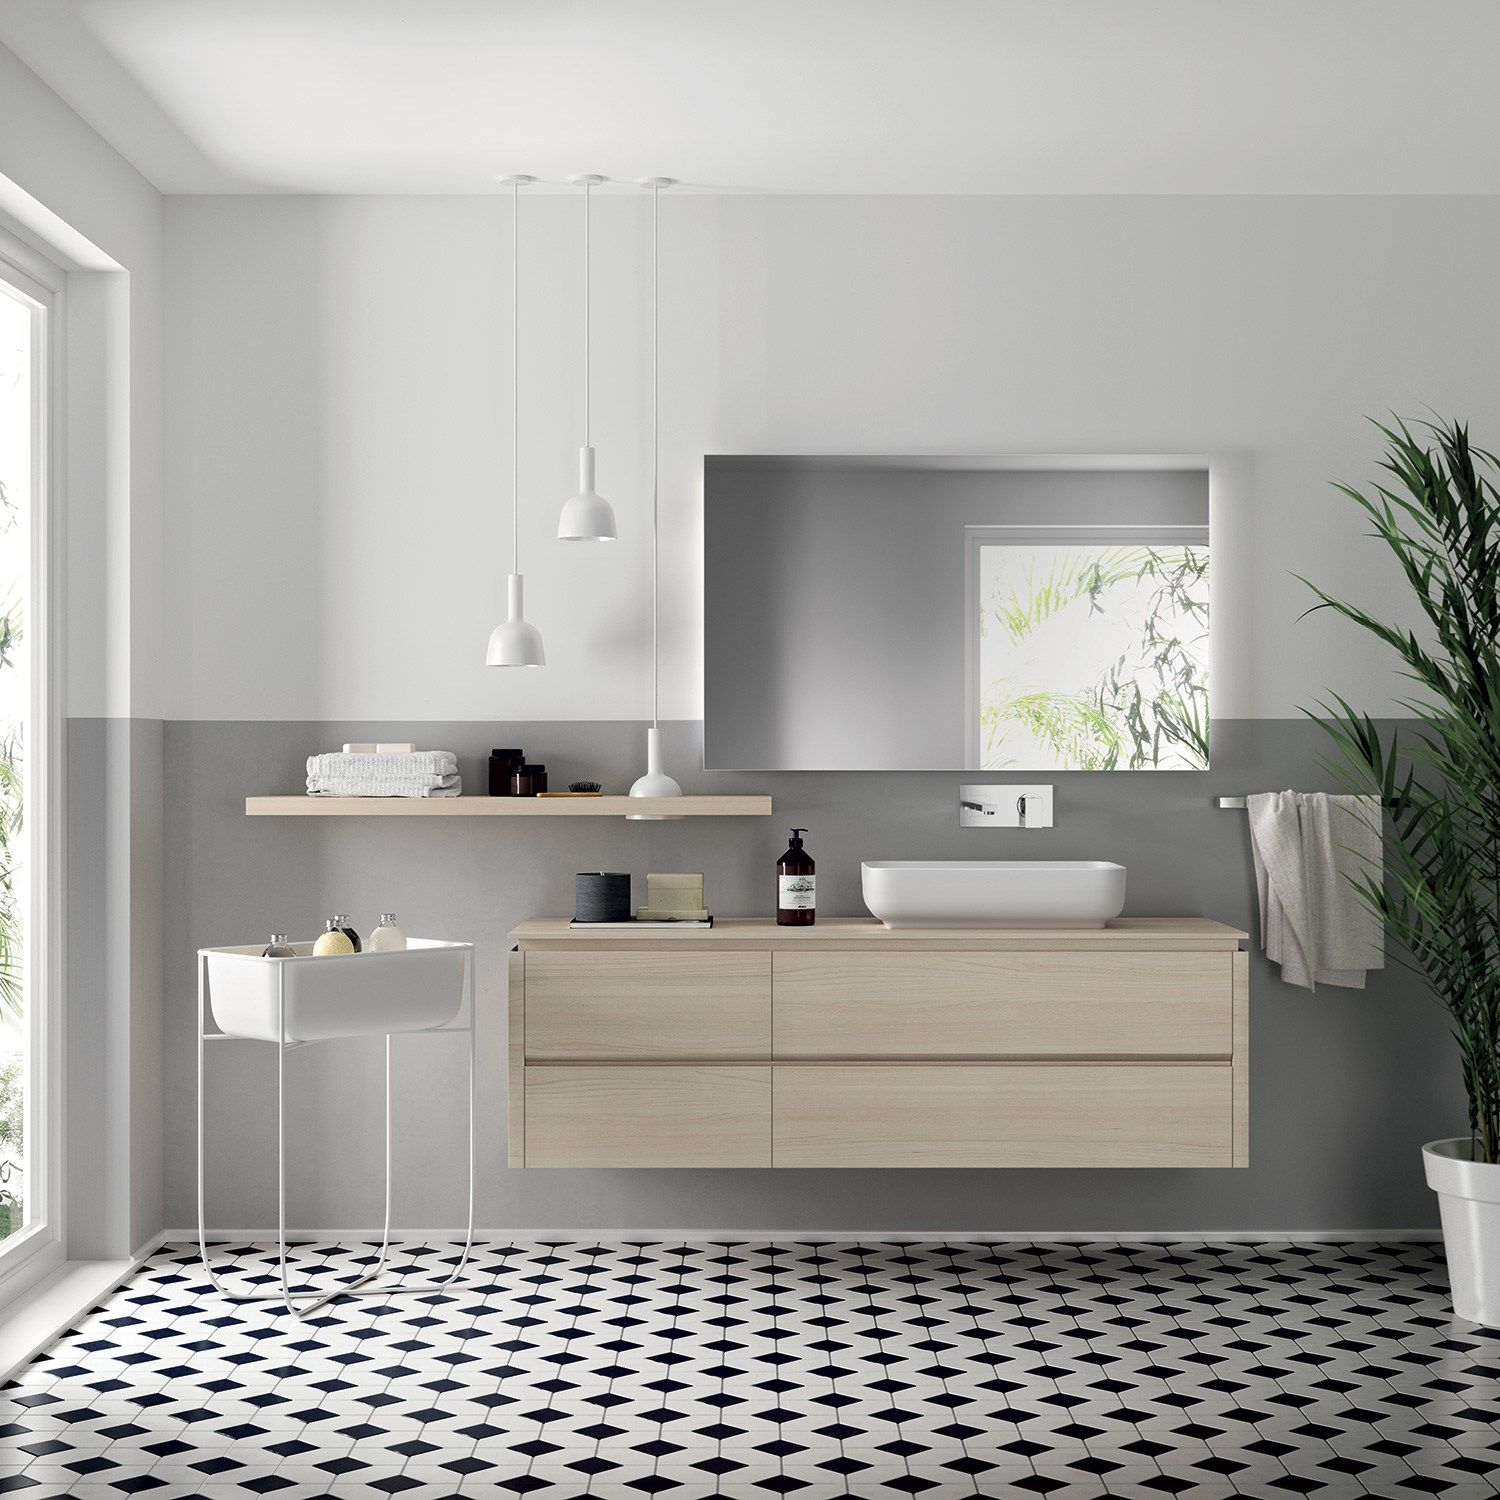 bathroom furniture set ki by scavolini bathrooms design nendo, Hause ideen